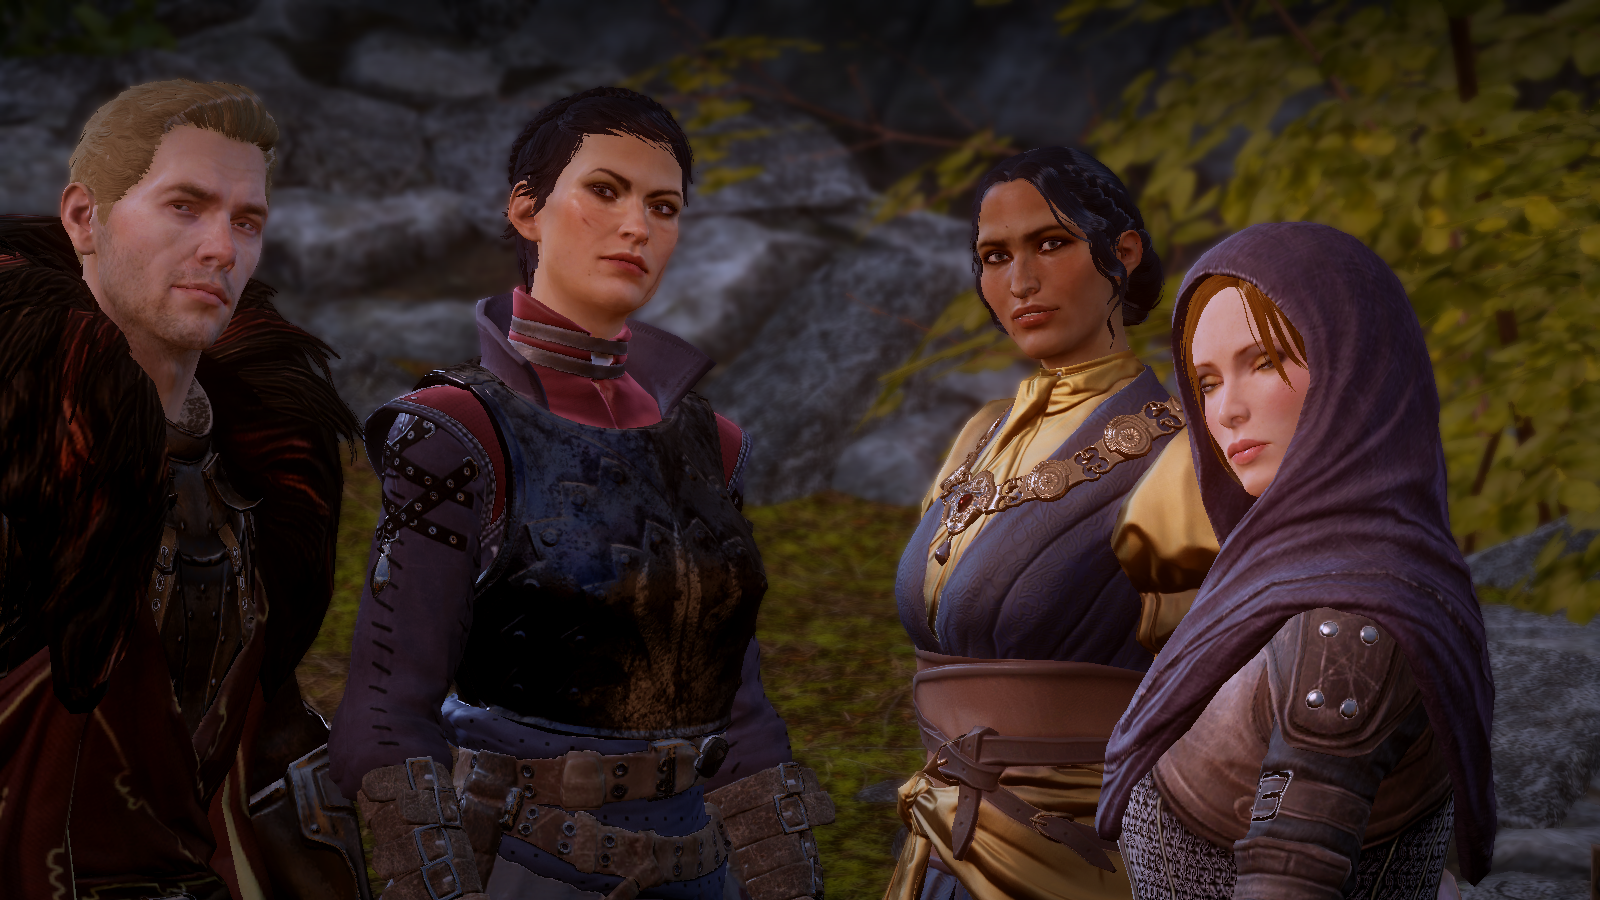 A screenshot of the Inquisitor's advisors (from left: Cullen Rutherford, Cassandra Pentaghast, Josephine Montilyet, and Leliana) at Skyhold just before they announce that I am to become the official leader and proclaimed 'Inquisitor' of the Inquisition.